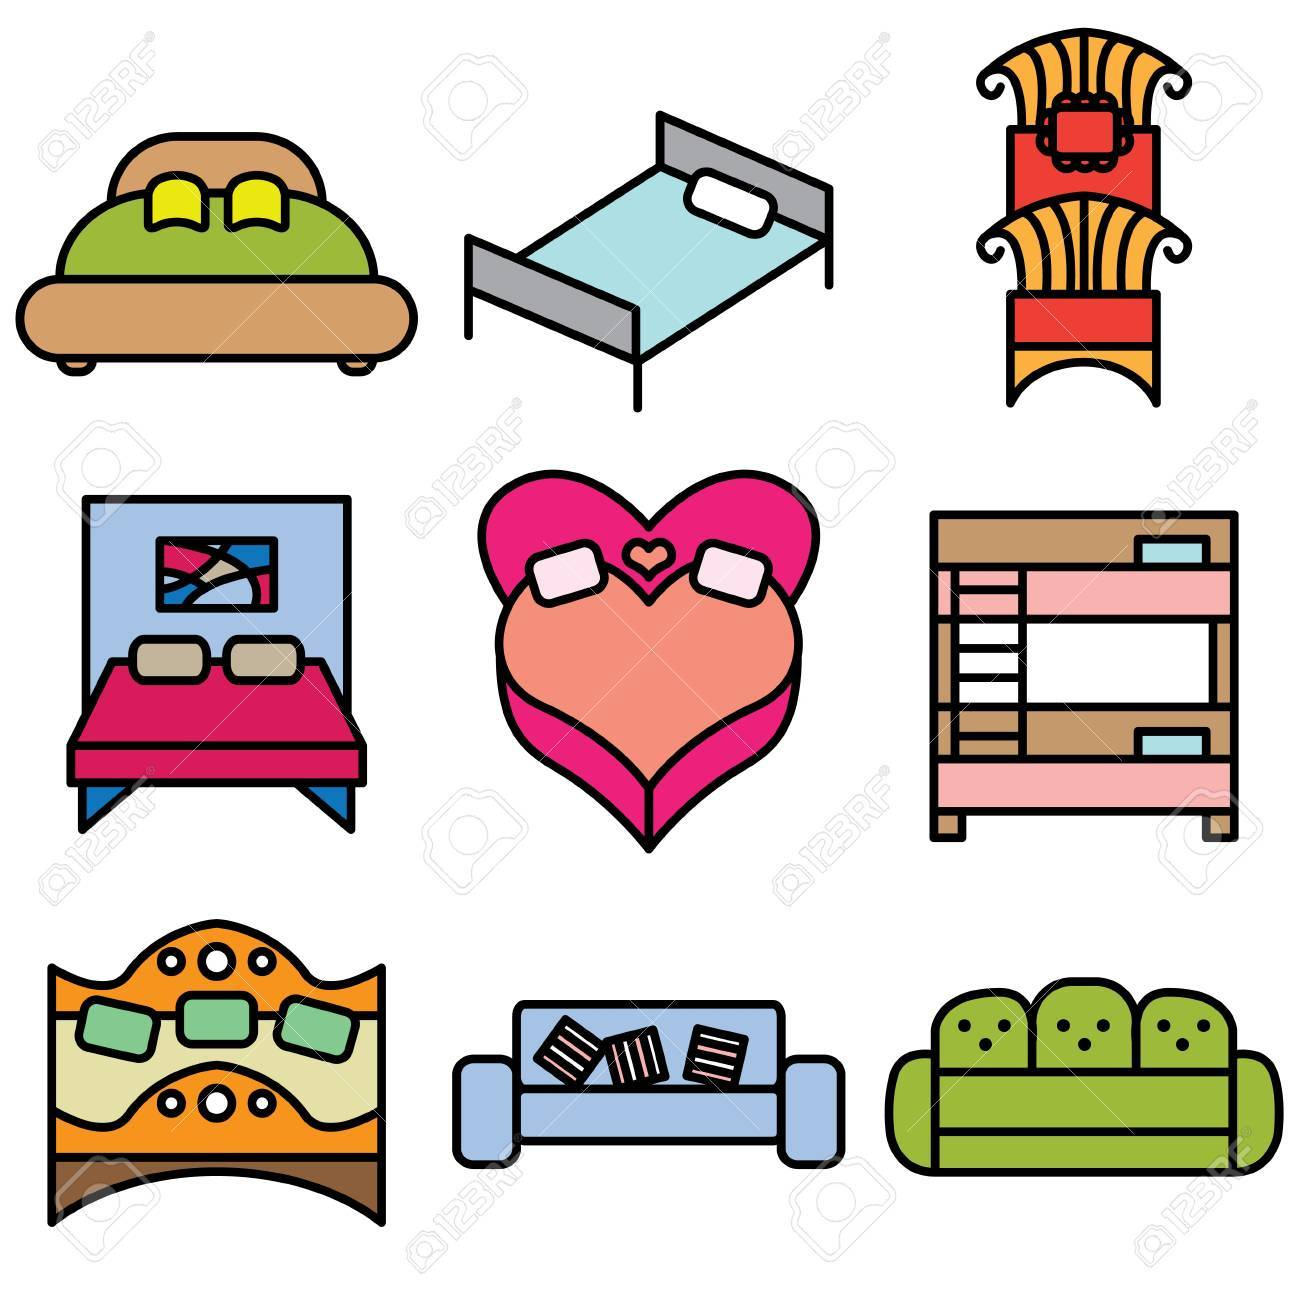 bed icons vector set Stock Vector - 13406460